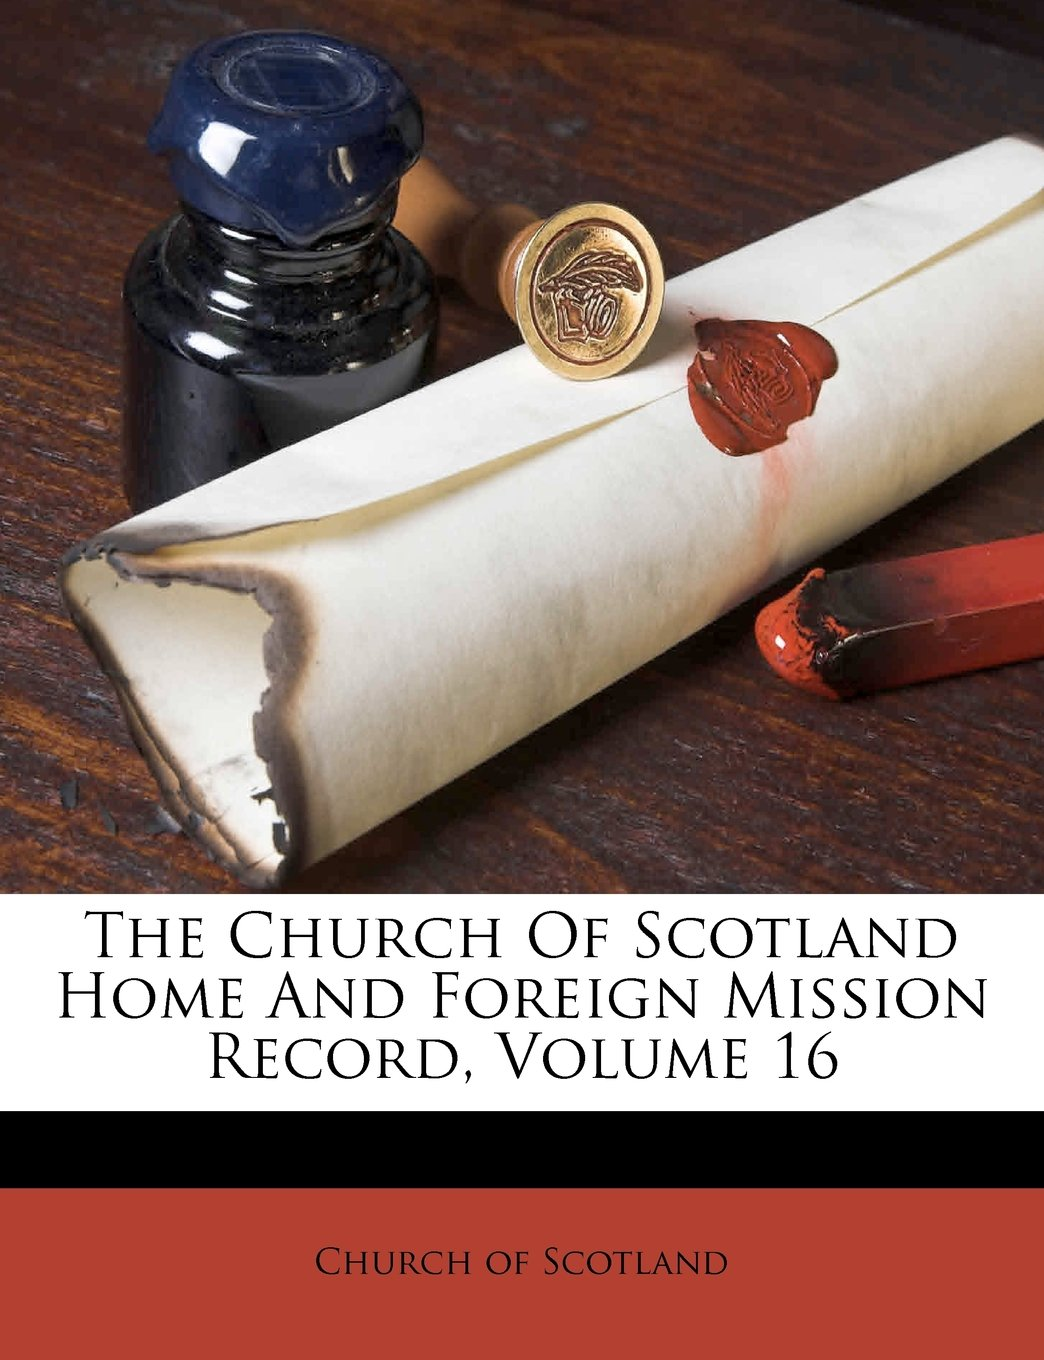 Download The Church Of Scotland Home And Foreign Mission Record, Volume 16 PDF